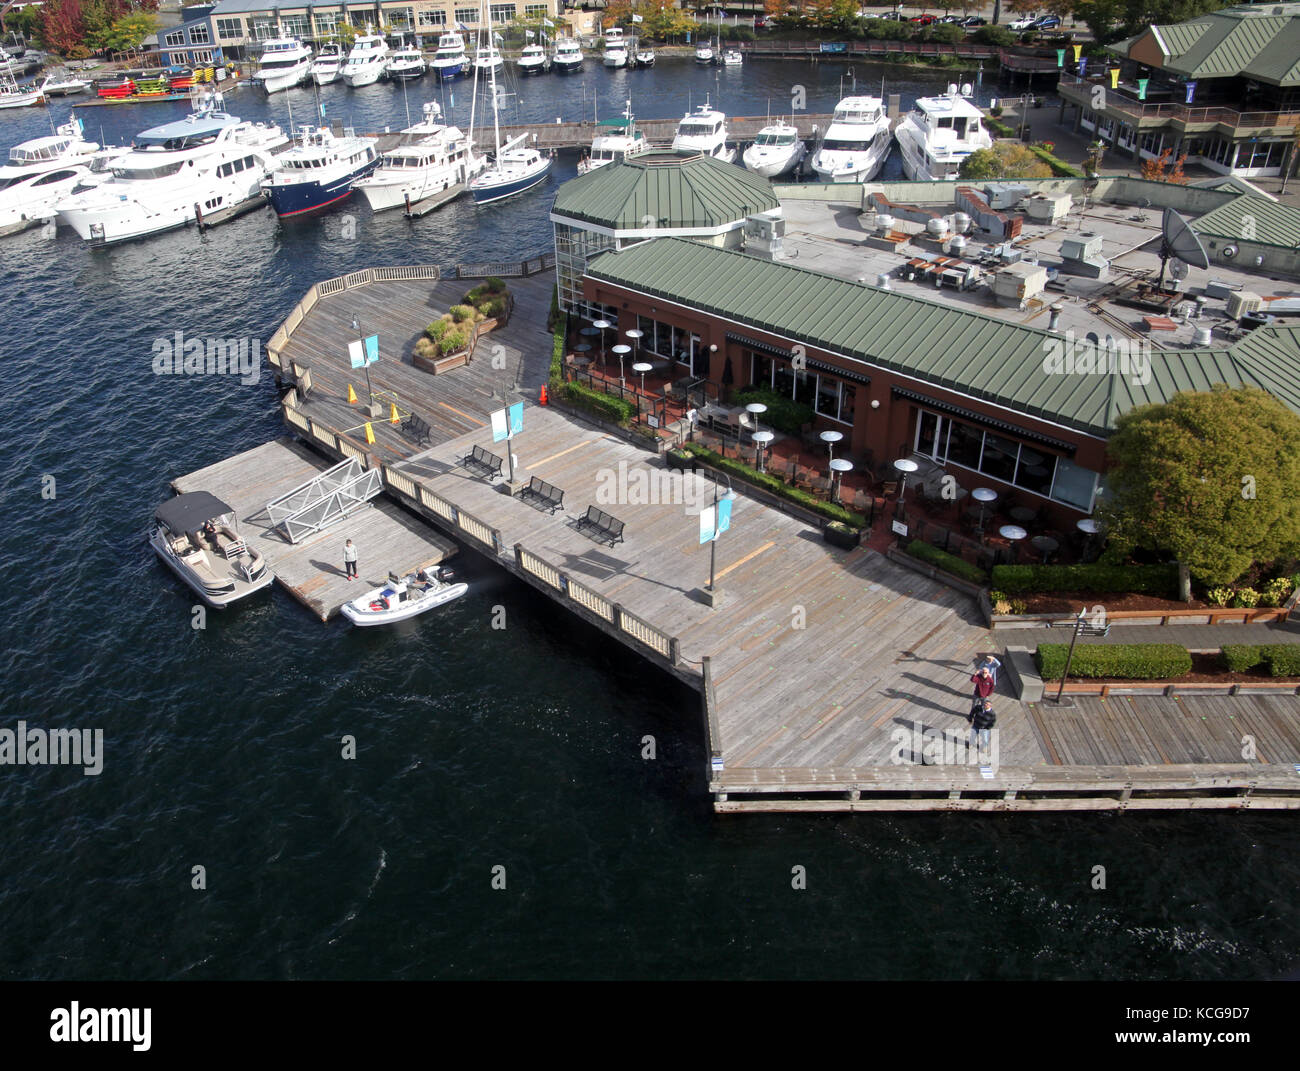 Duke's Seafood & Chowder Restuarant, Seattle, WA 98109, USA - Stock Image